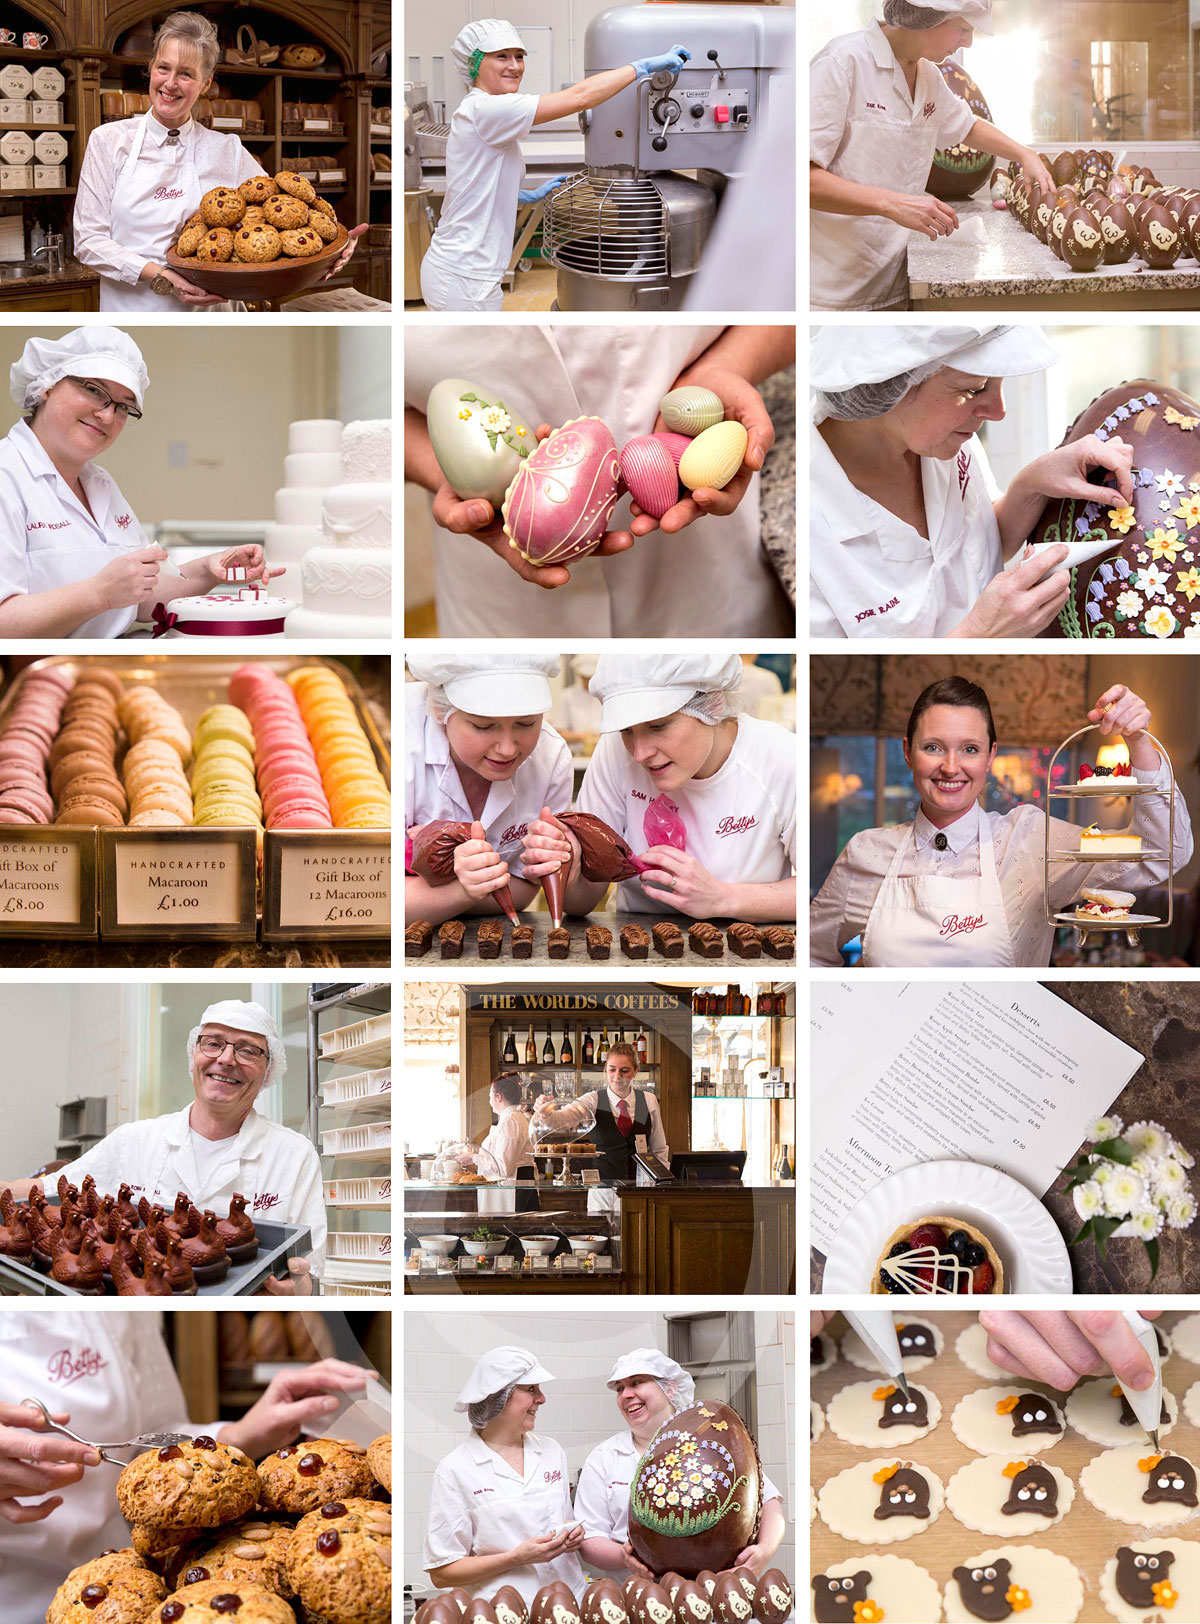 Betty's-tearooms-harrogate-yorkshire-candis-magazine-editorial-photography-photographer-reportage-documentary